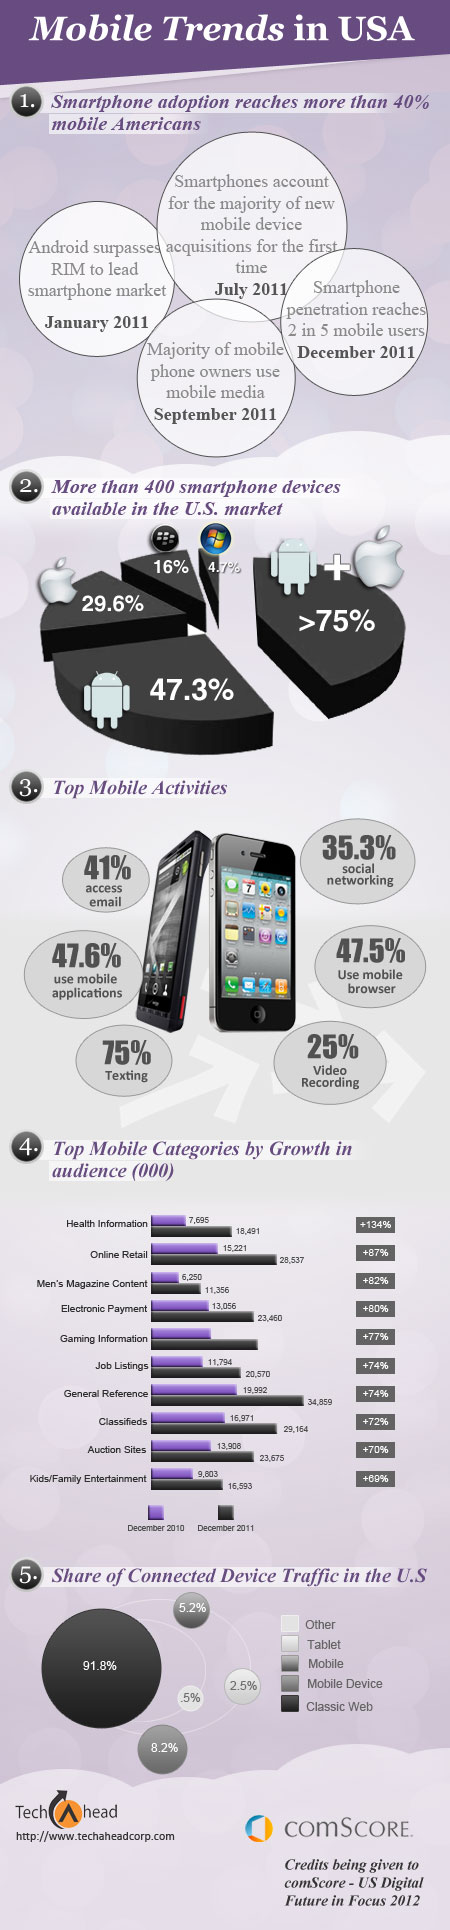 mobile trends in USA for 2012